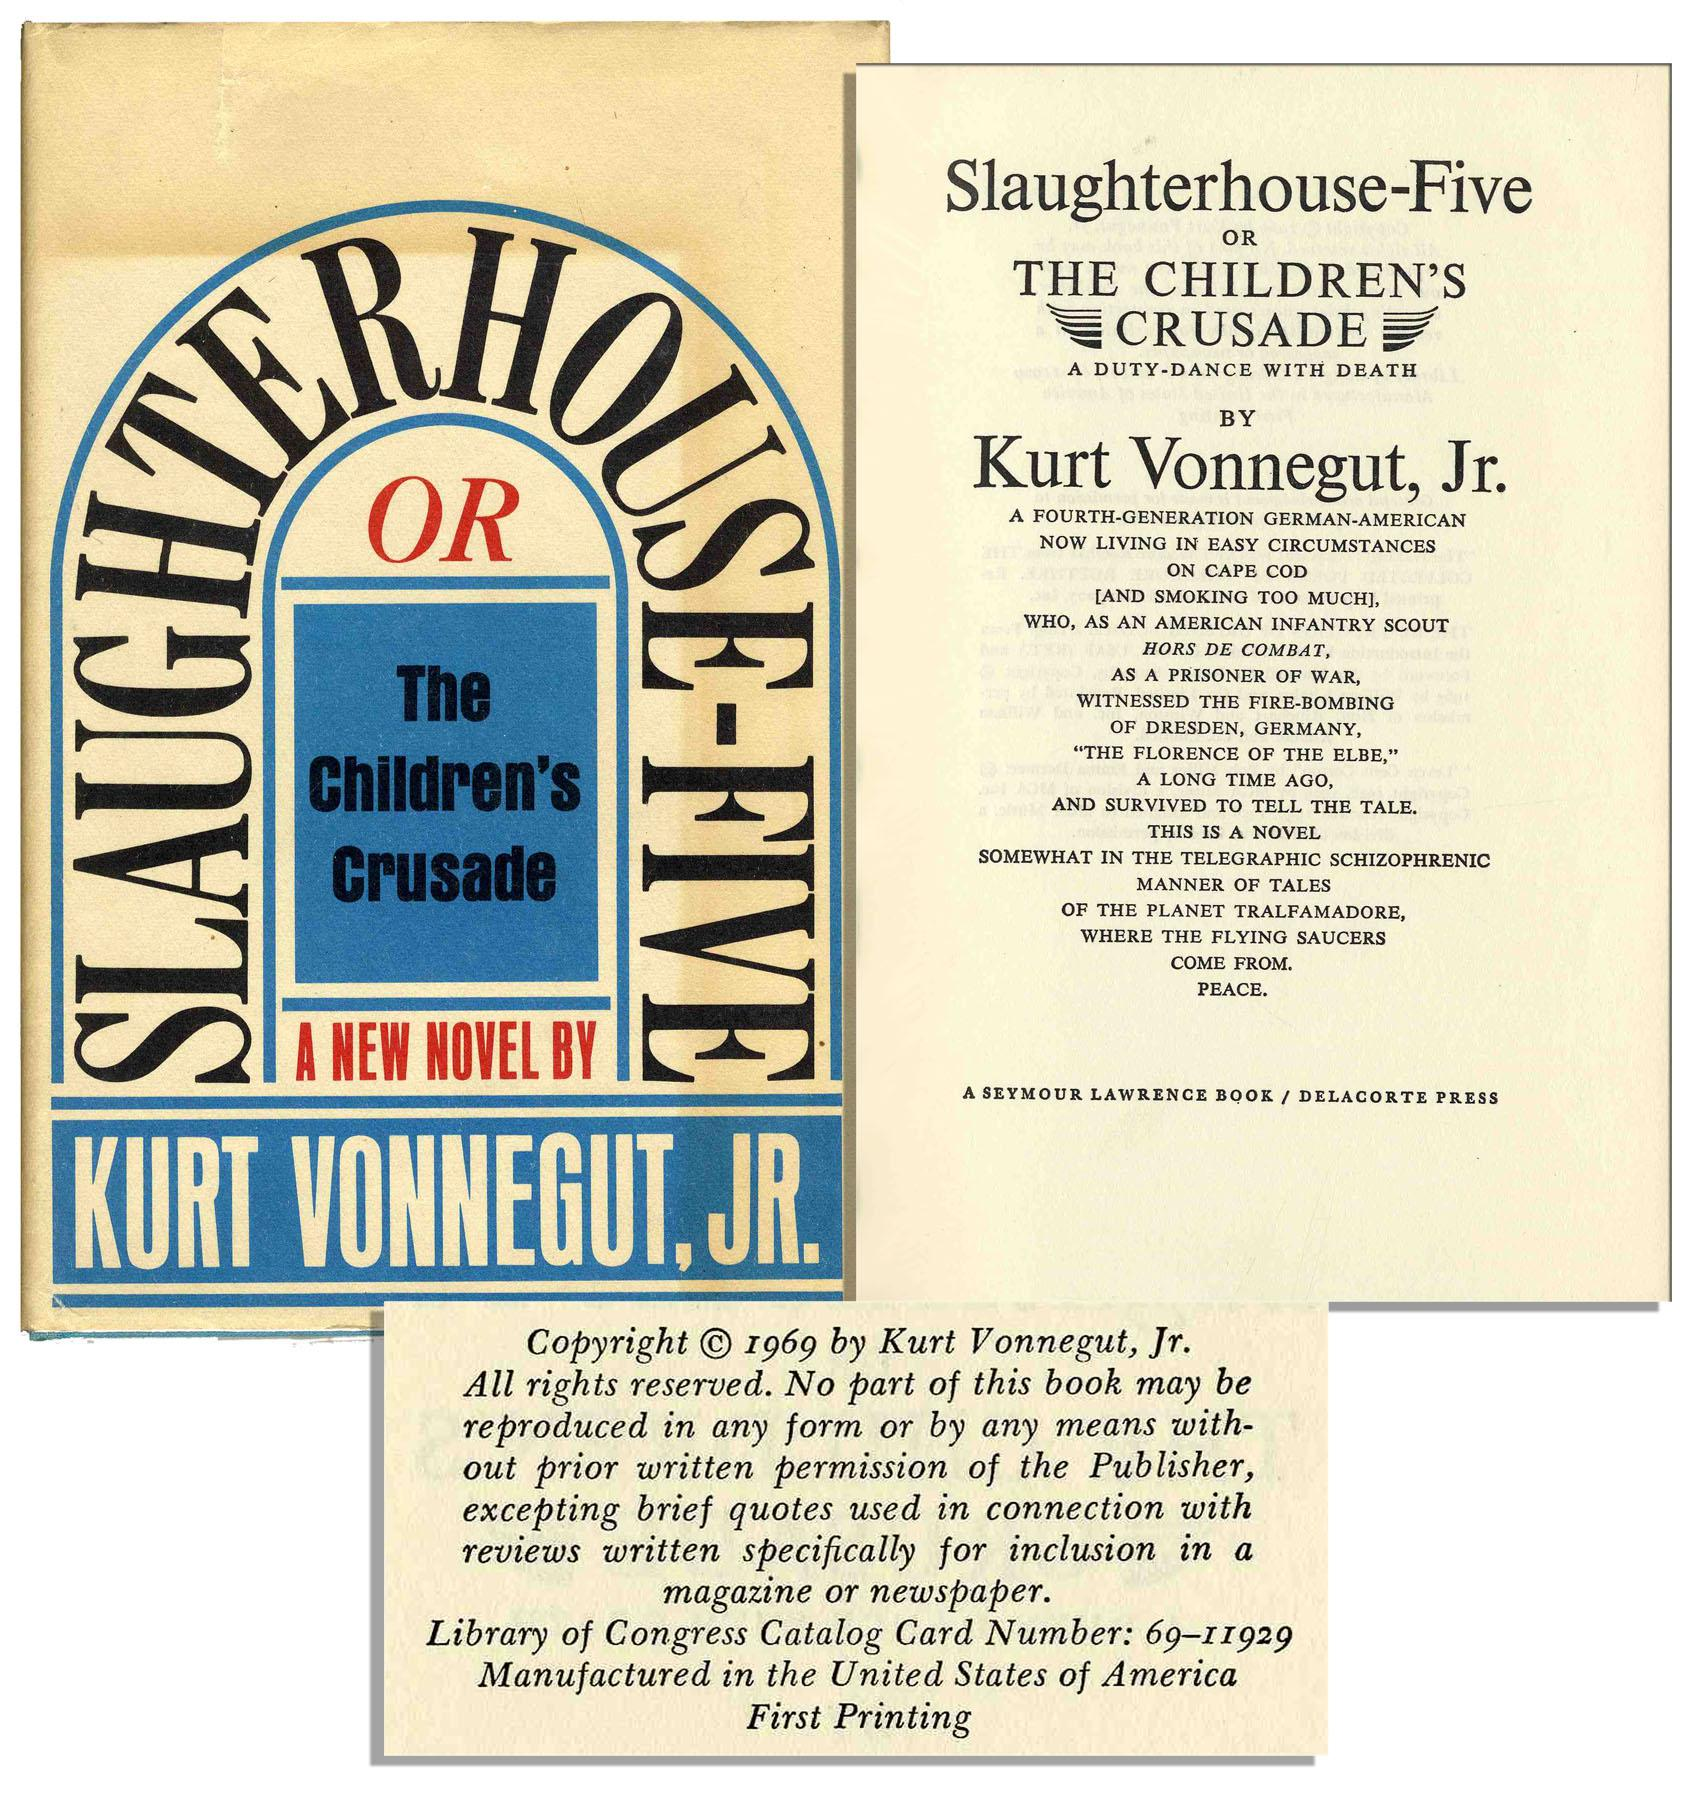 the symbolism of earth and tralfamadore in slaughterhouse five by kurt vonnegut